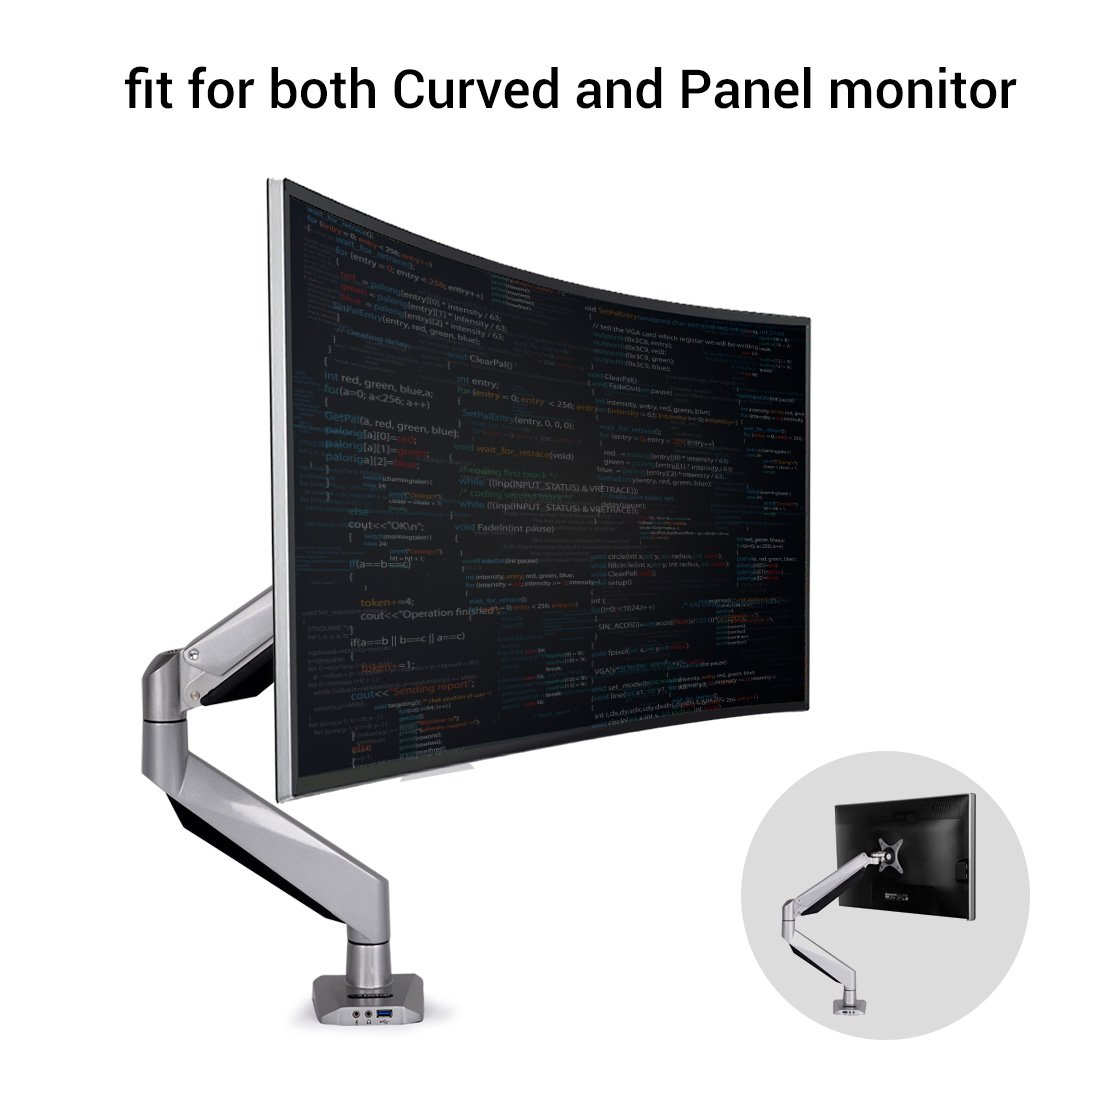 Loctek D7R Monitor Mount fits for both Curved and Panel 10- 34 inch Monitors Gas Spring Desk Top LCD Monitor Arm (D7R ,Weighting 8.8-22 lbs)